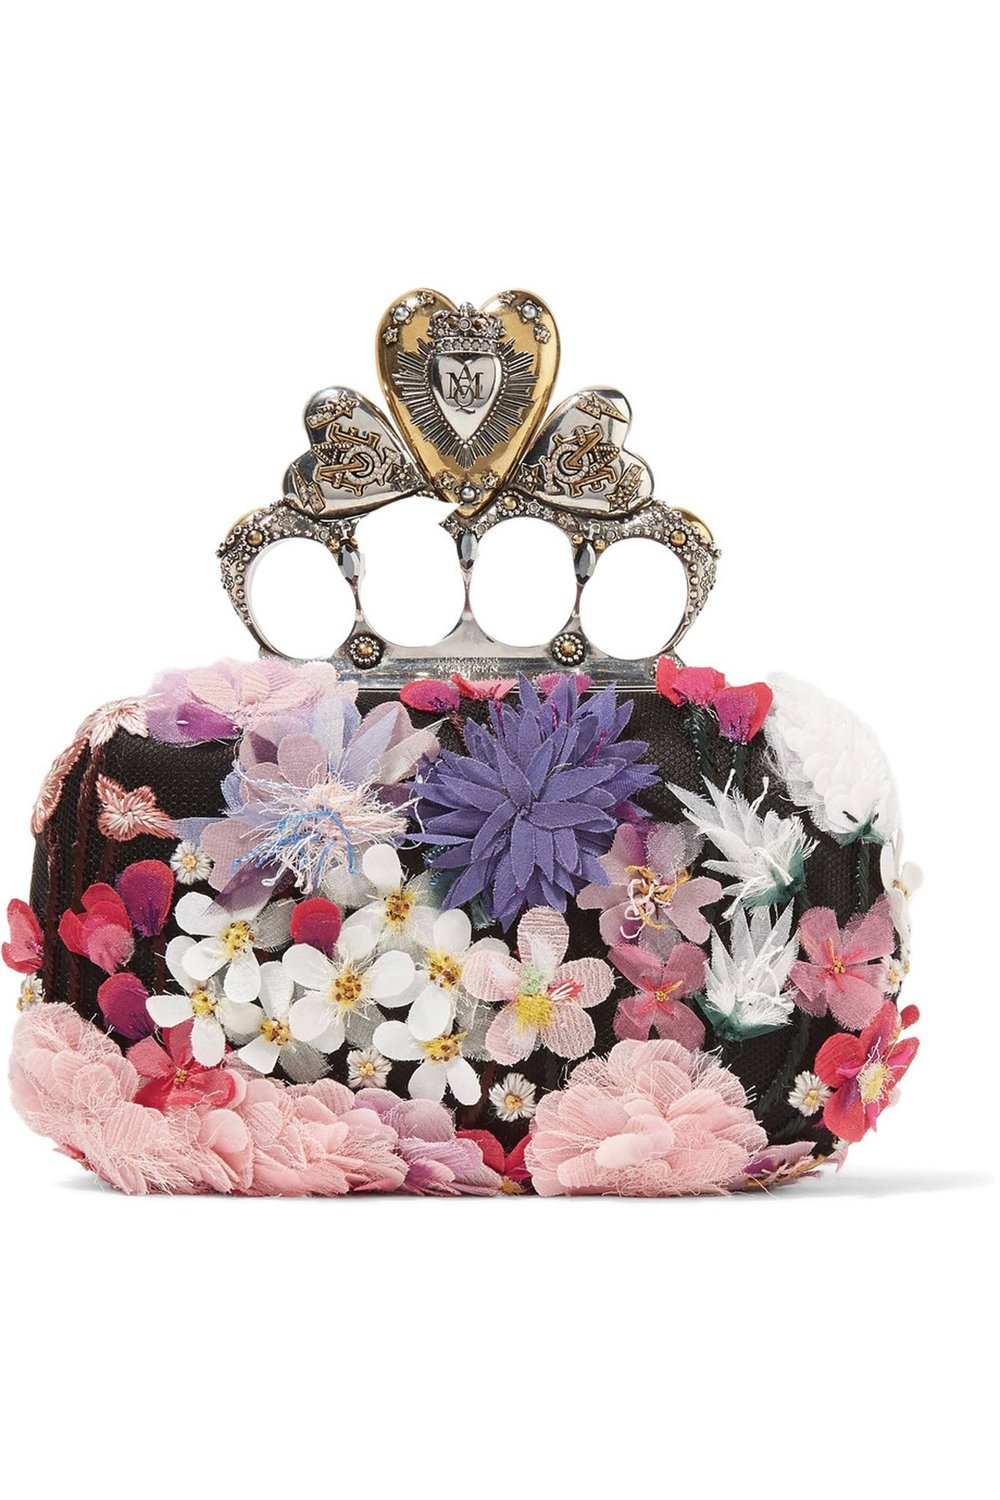 Knuckle Floral-Appliquéd Satin Clutch by Alexander McQueen $4,780